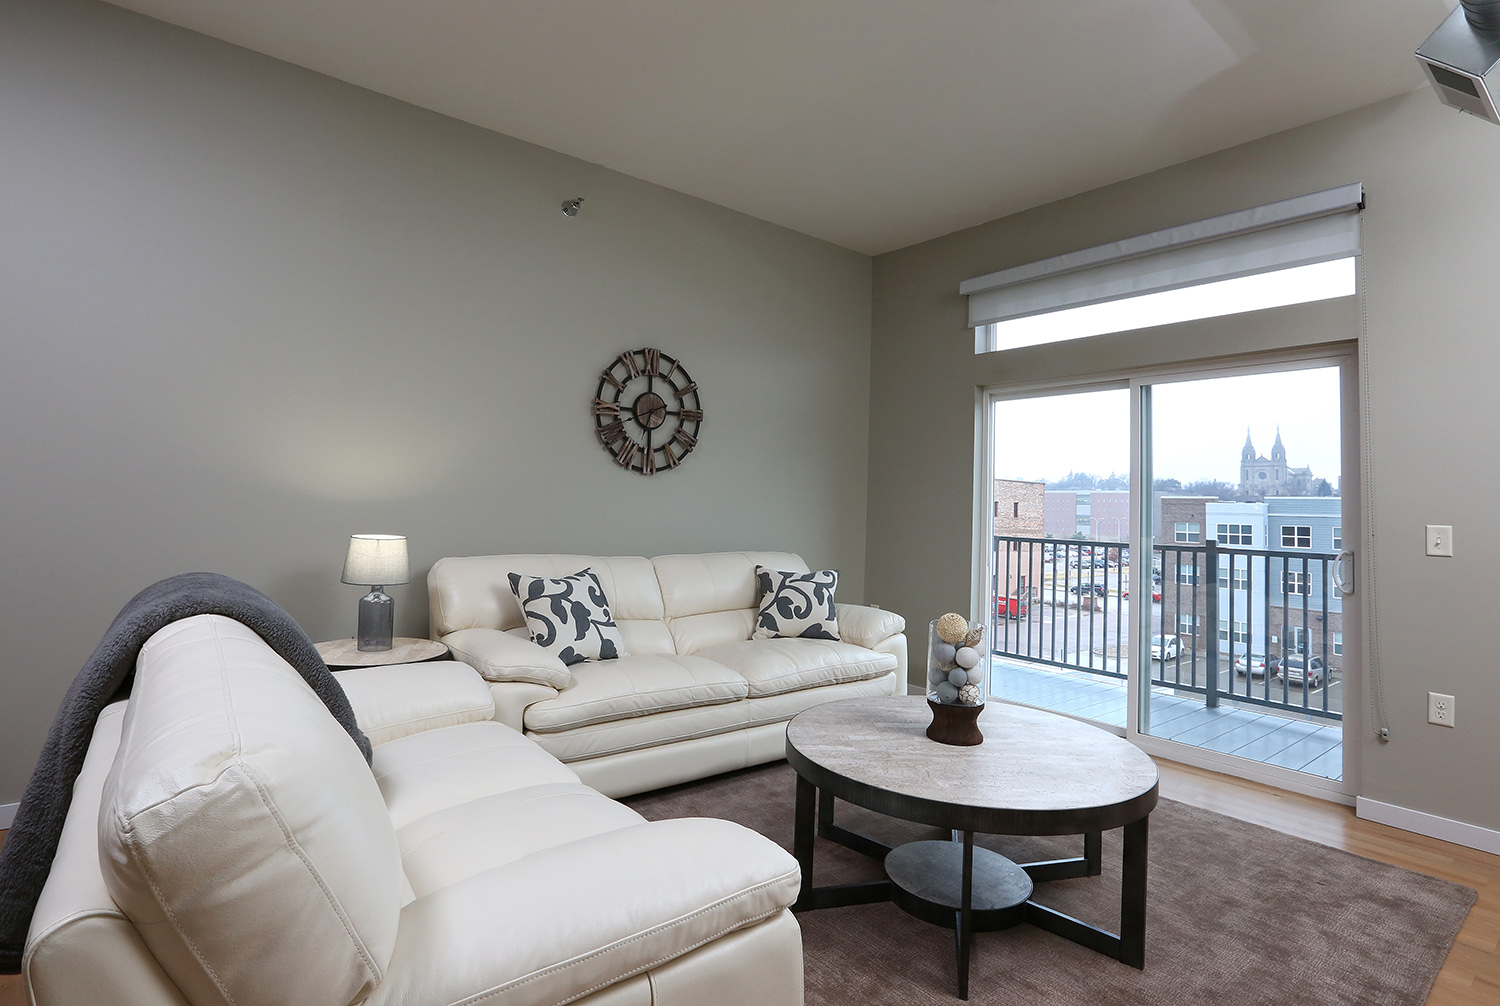 The Lofts Sioux Falls See Pics Amp Avail